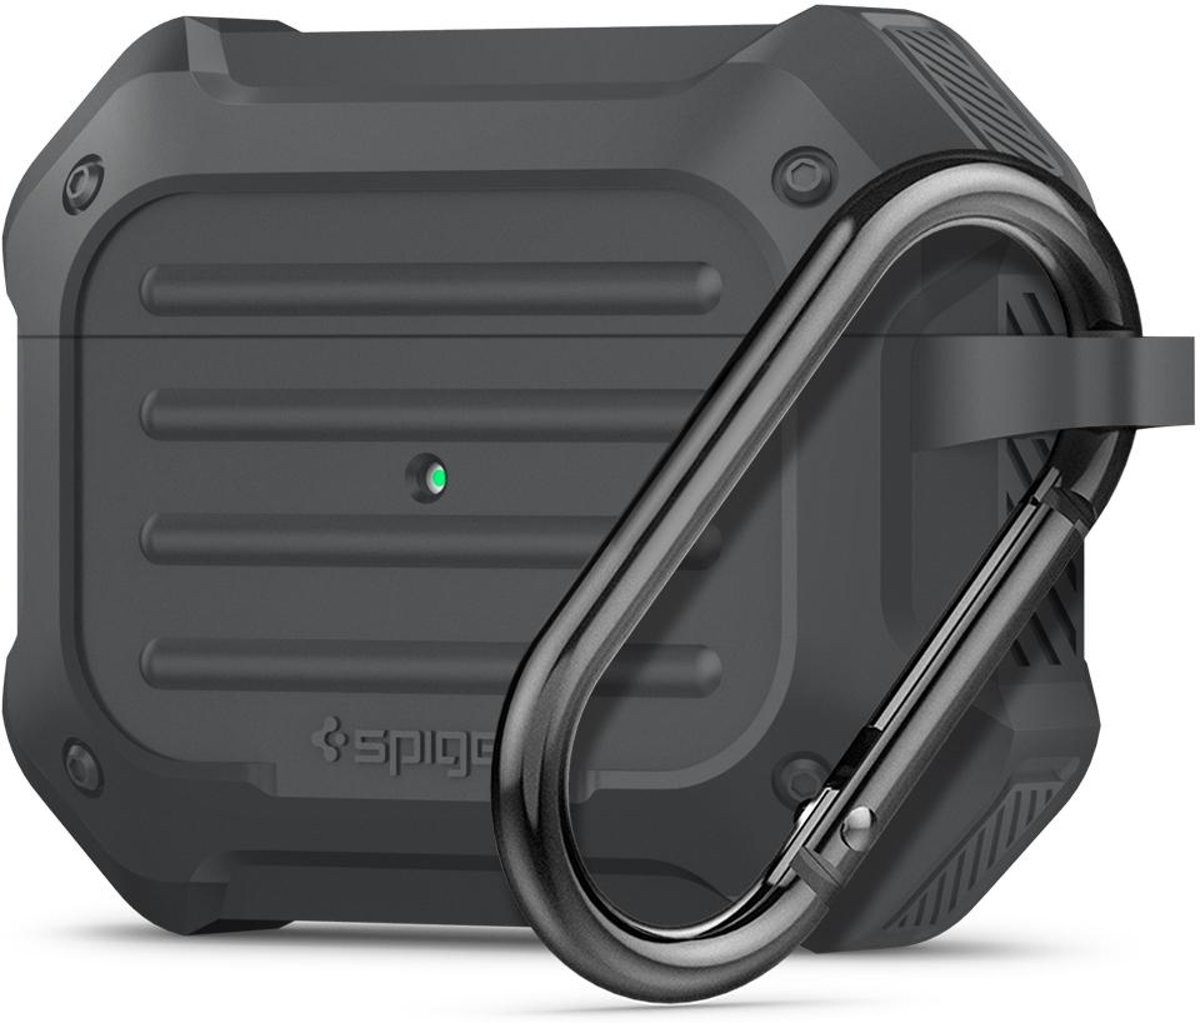 Spigen Airpods Pro Tough Armor Charcoal kopen